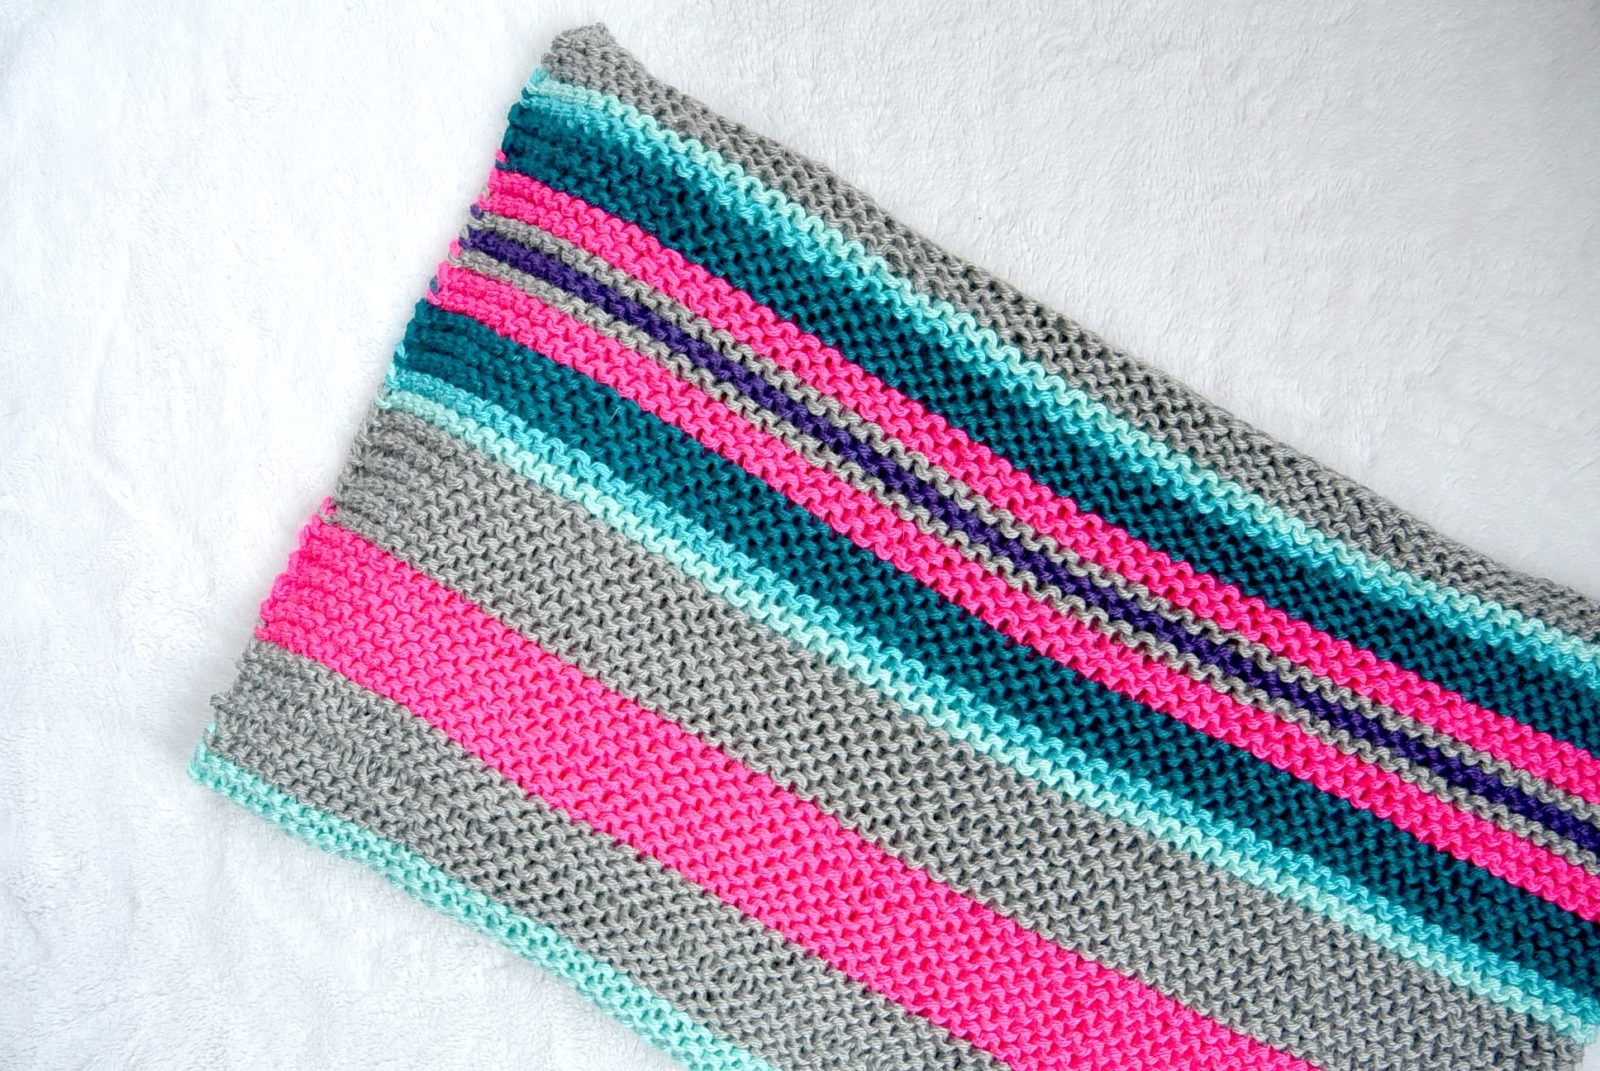 Easy Knit Blanket How To : Easy Native Stripes Knit Blanket / Throw   Mama In A Stitch